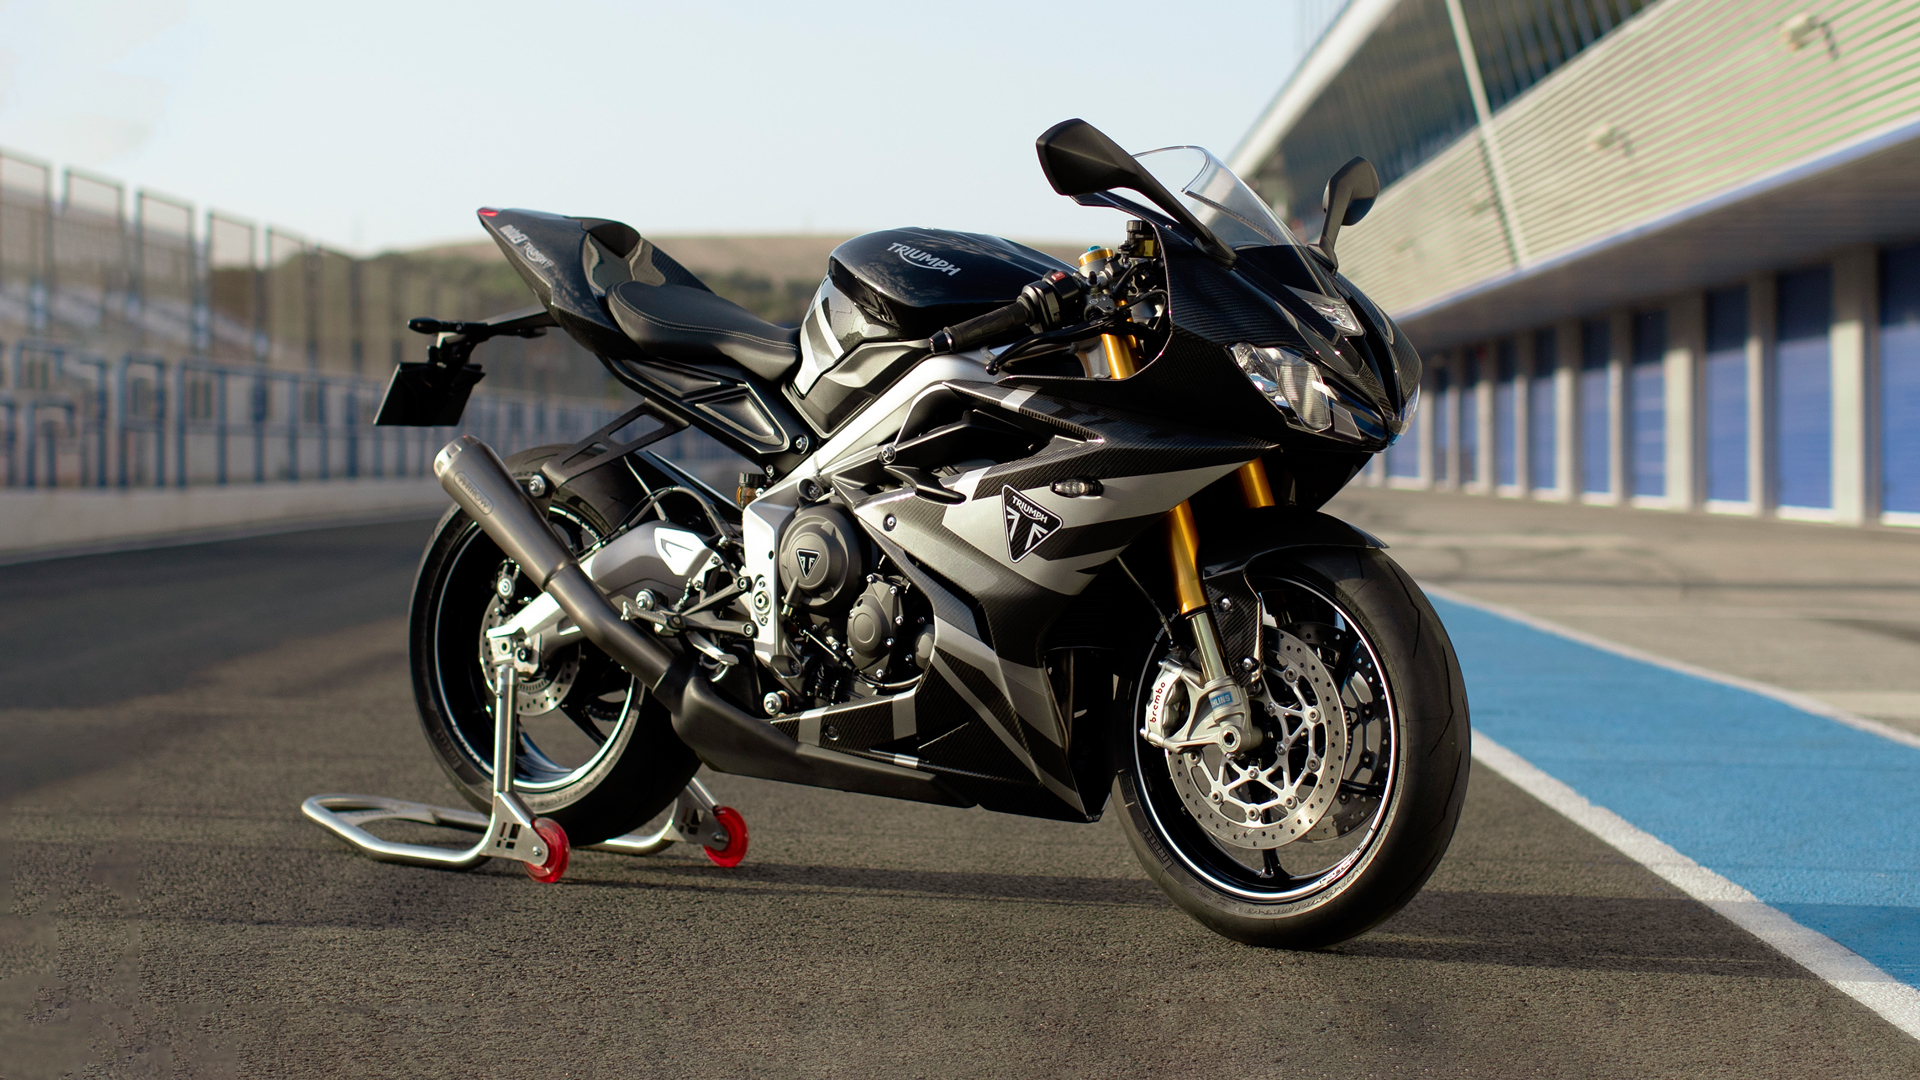 Triumph Daytona Moto2TM 765 motorcycle (EU and Asia Edition) stationary in the paddocks